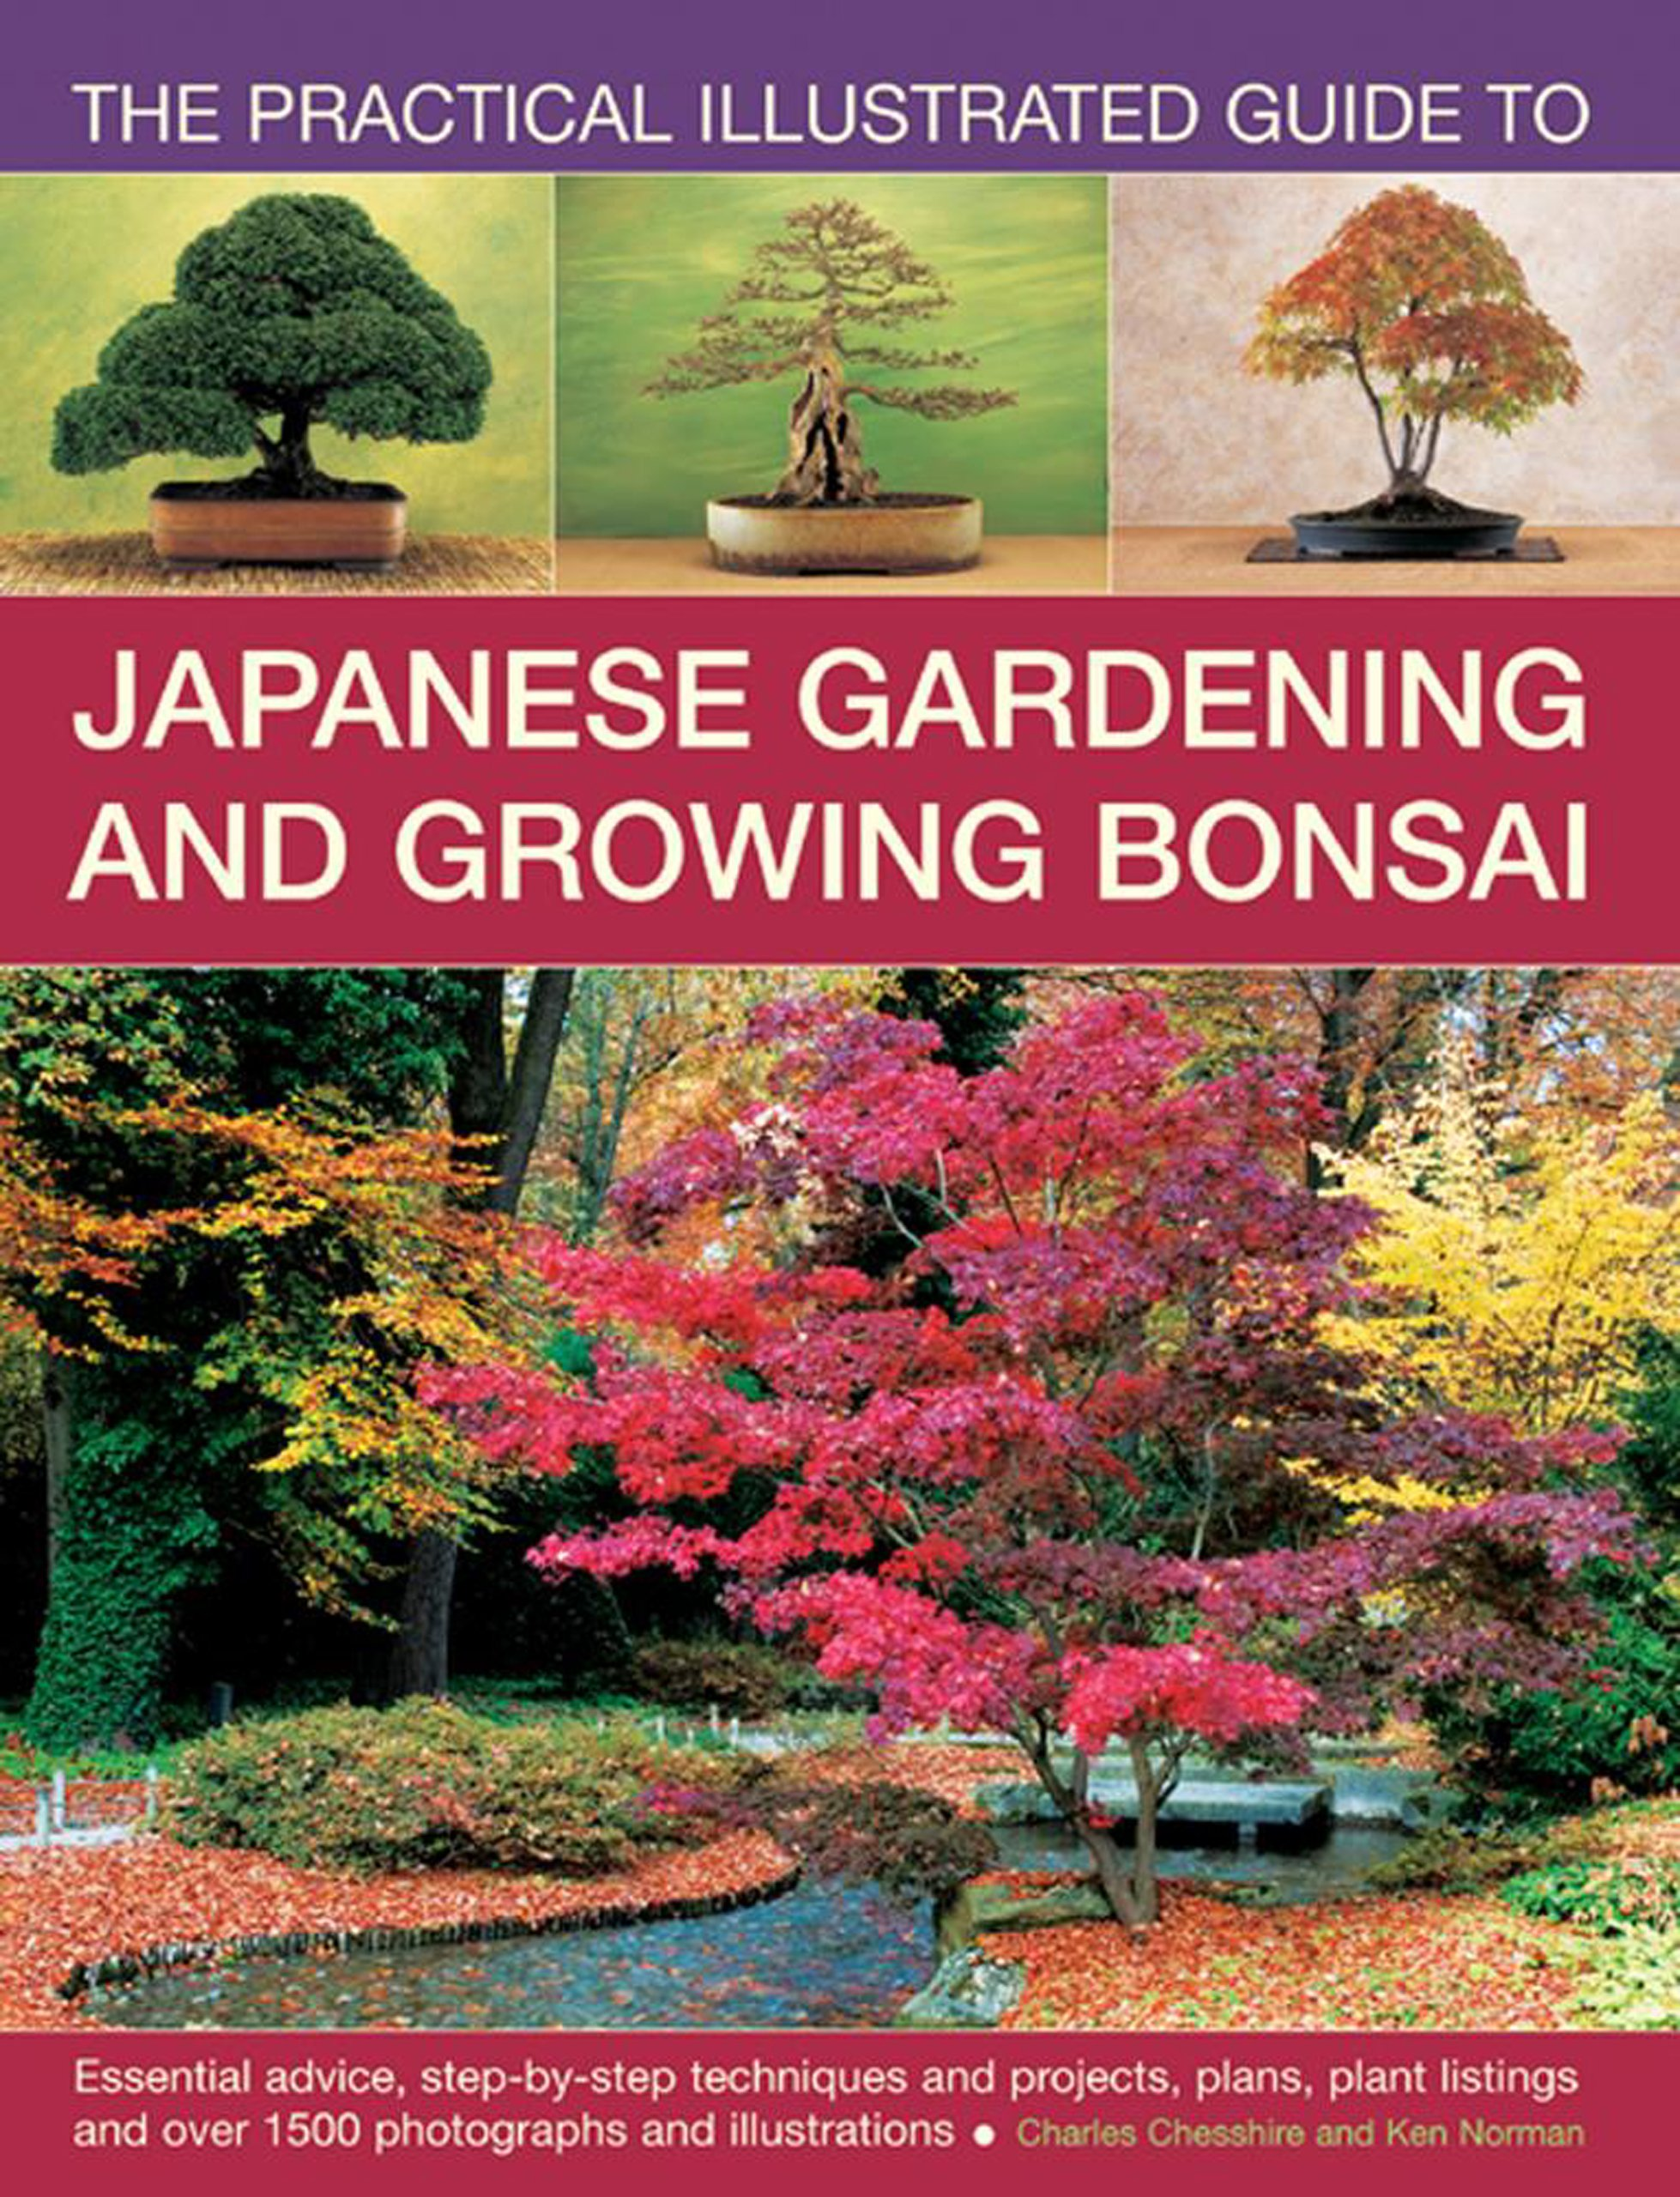 The Practical Illustrated Guide to Japanese Gardening and Growing Bonsai: Essential Advice, Step-By-Step Techniques And Projects, Plans, Plant Listings And Over 1500 Photographs And Illustrations